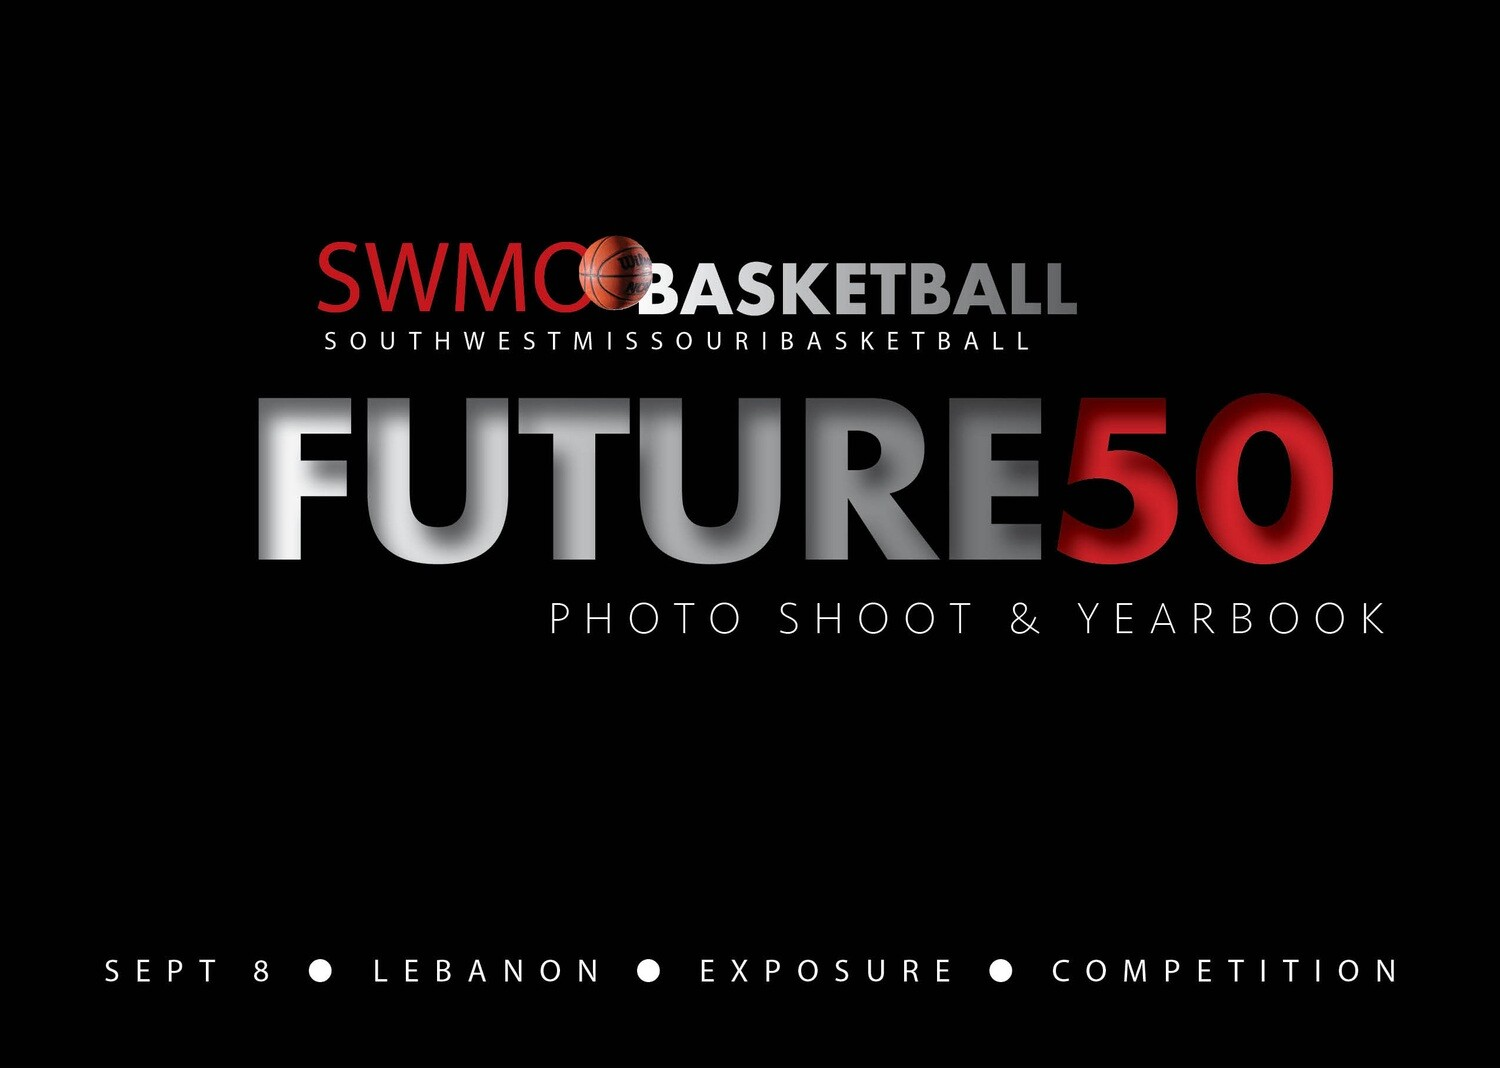 2019 Future50 Photo Package